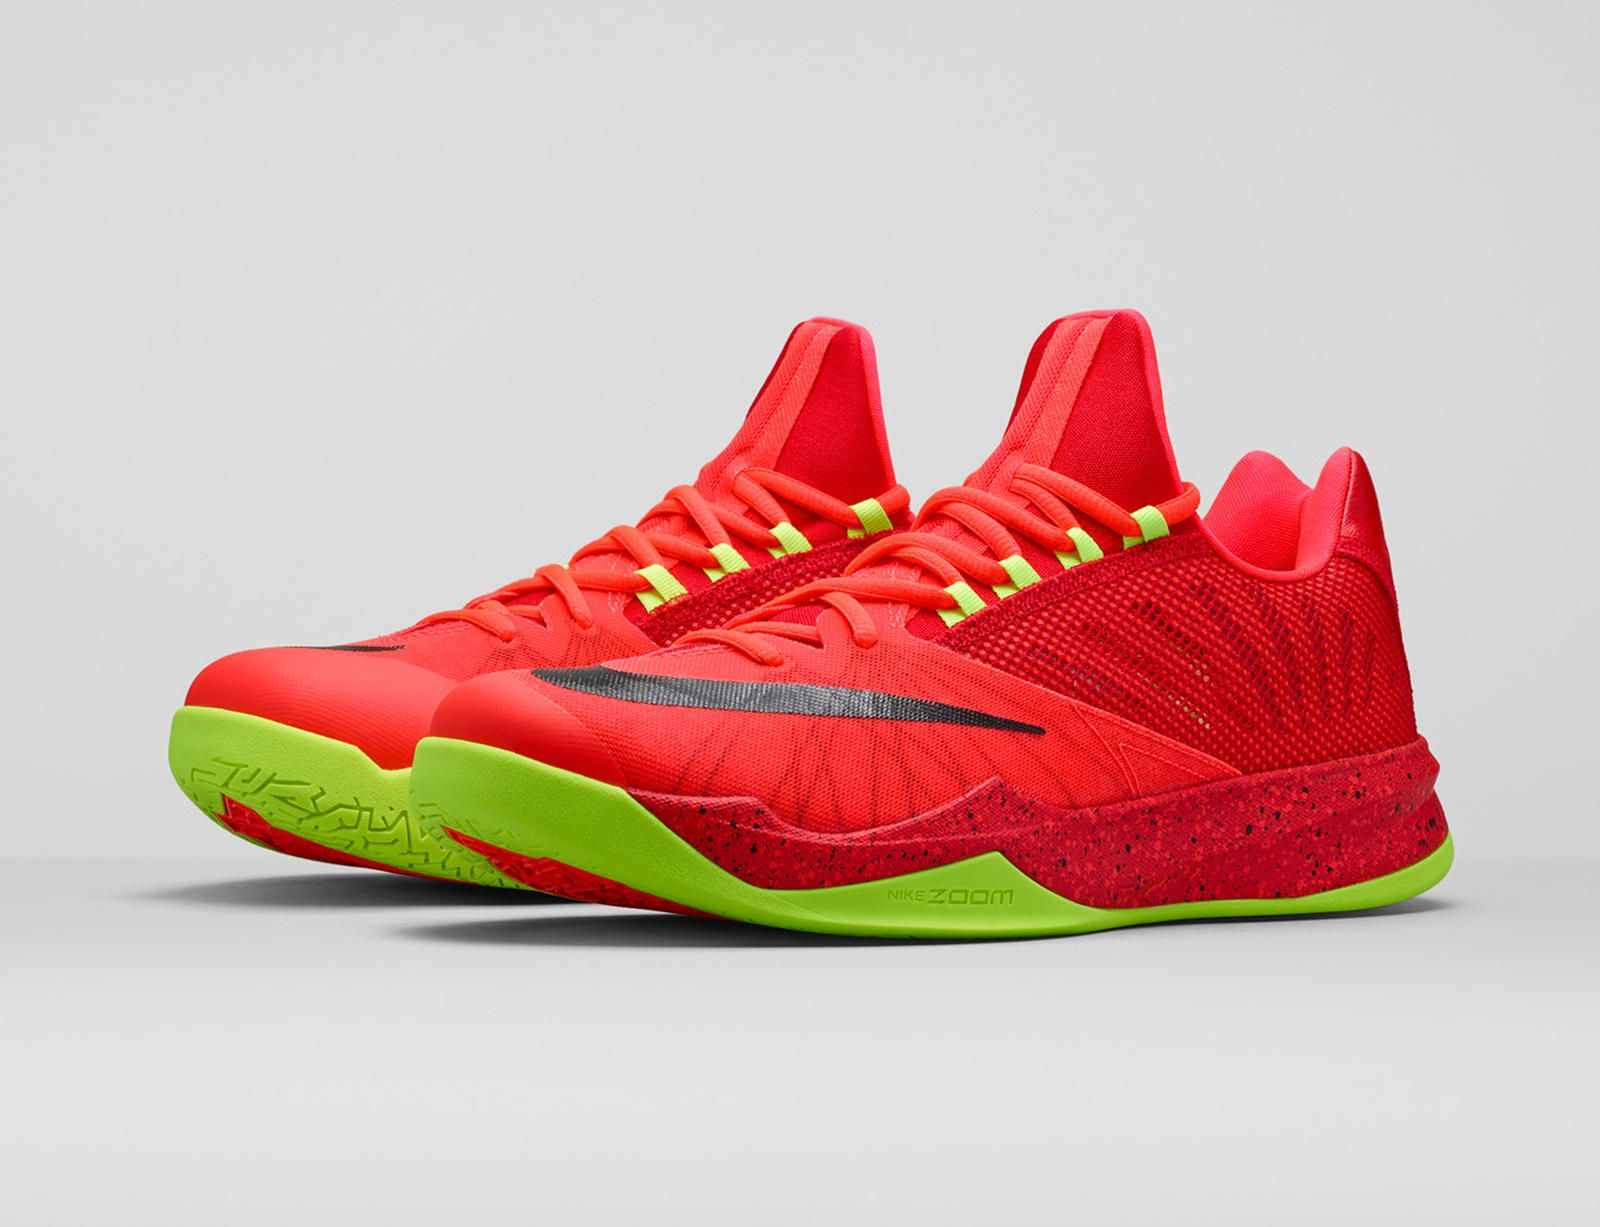 Nike Zoom Run the One James Harden PE Release Date  b93d8d3310